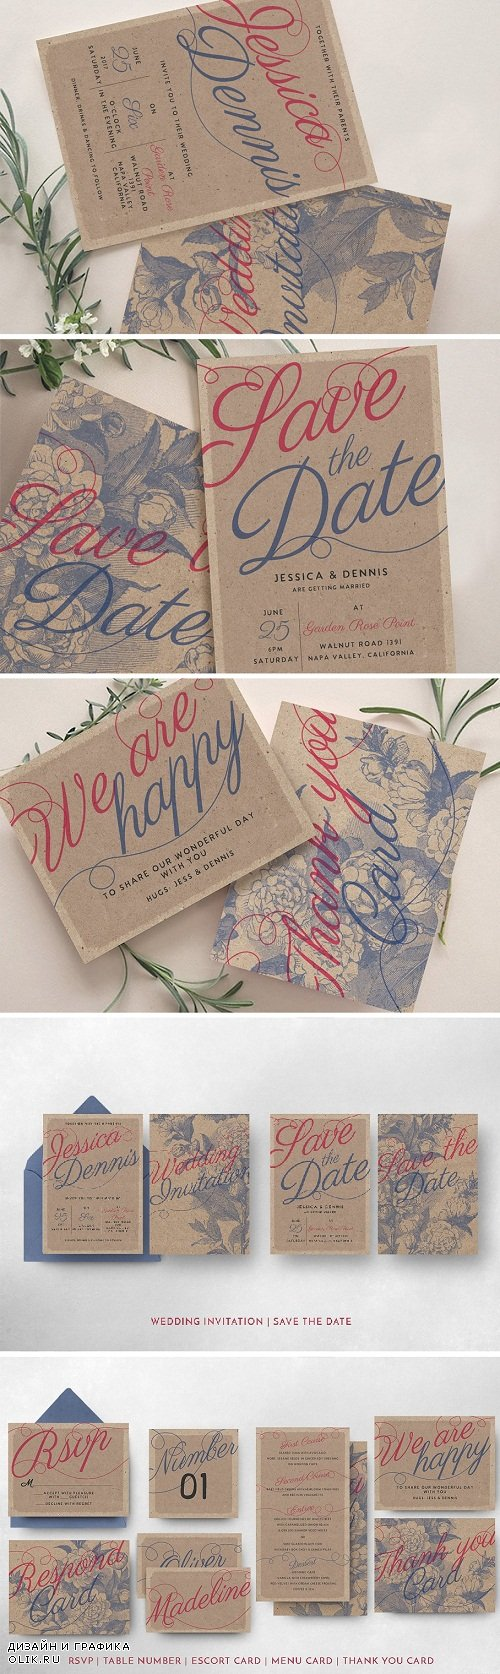 Rustic Wedding Invitations - 662656